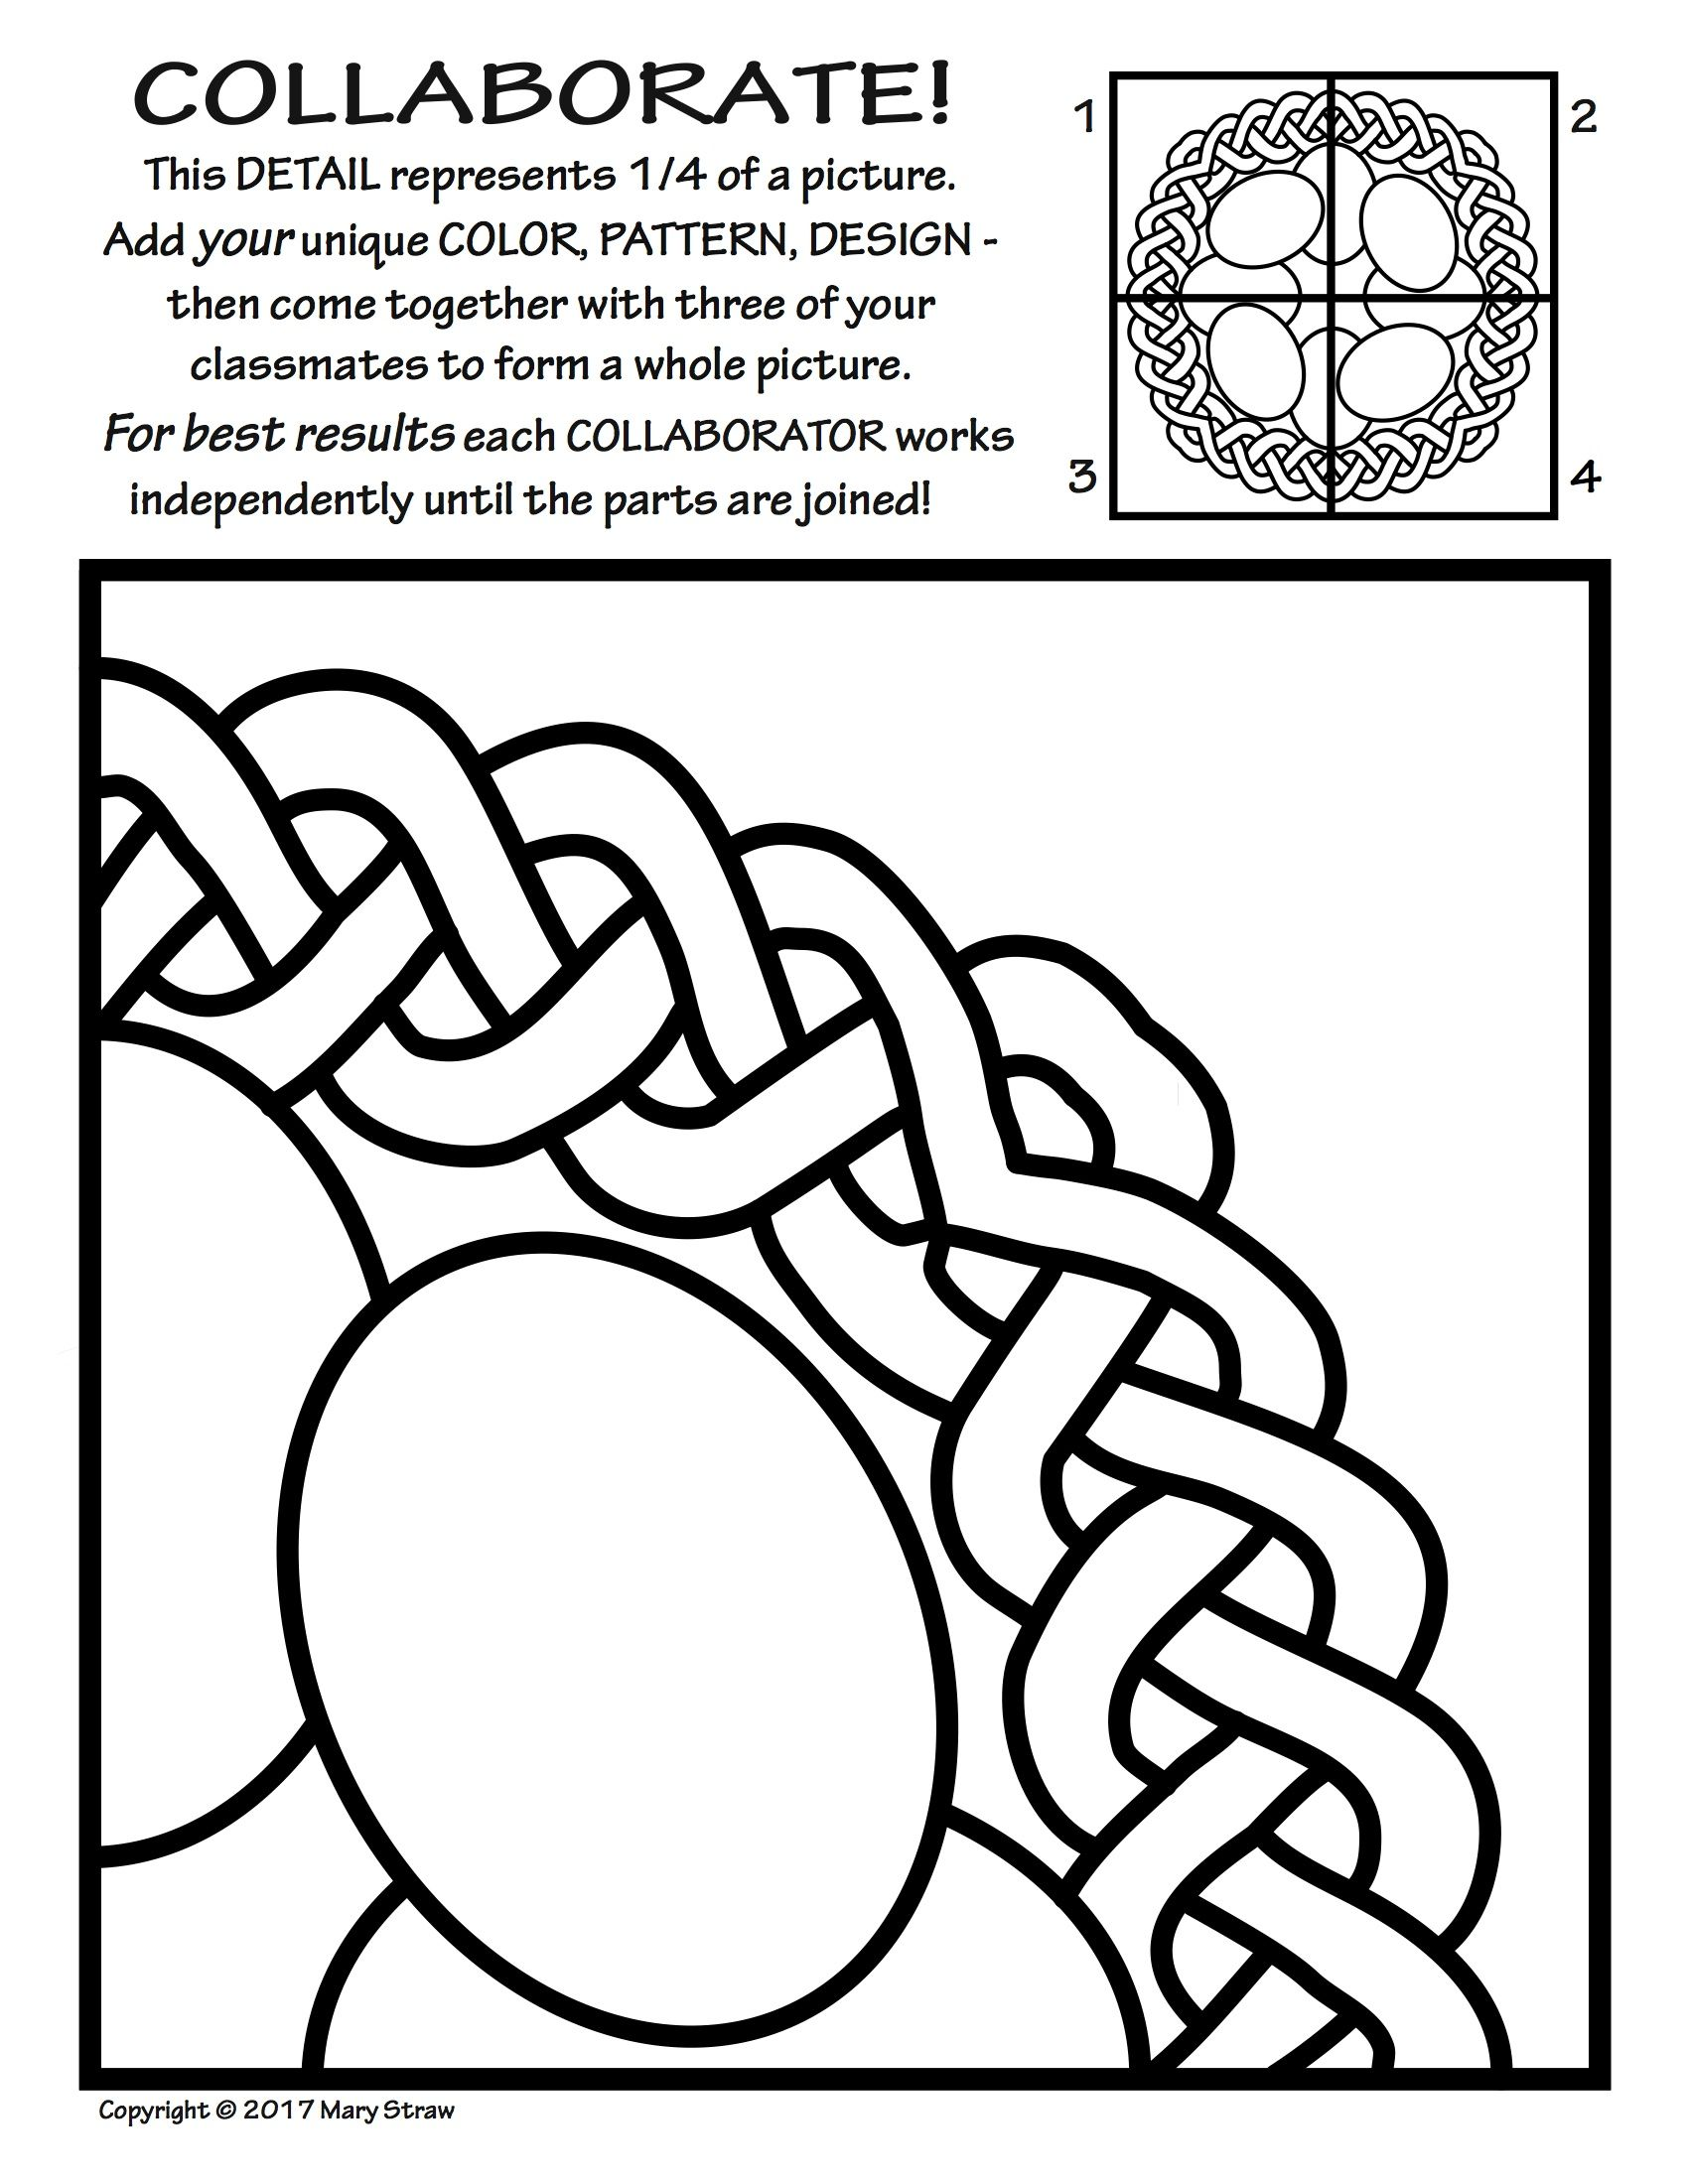 Radial Symmetry 2 Collaborative Activity Coloring Pages Kids